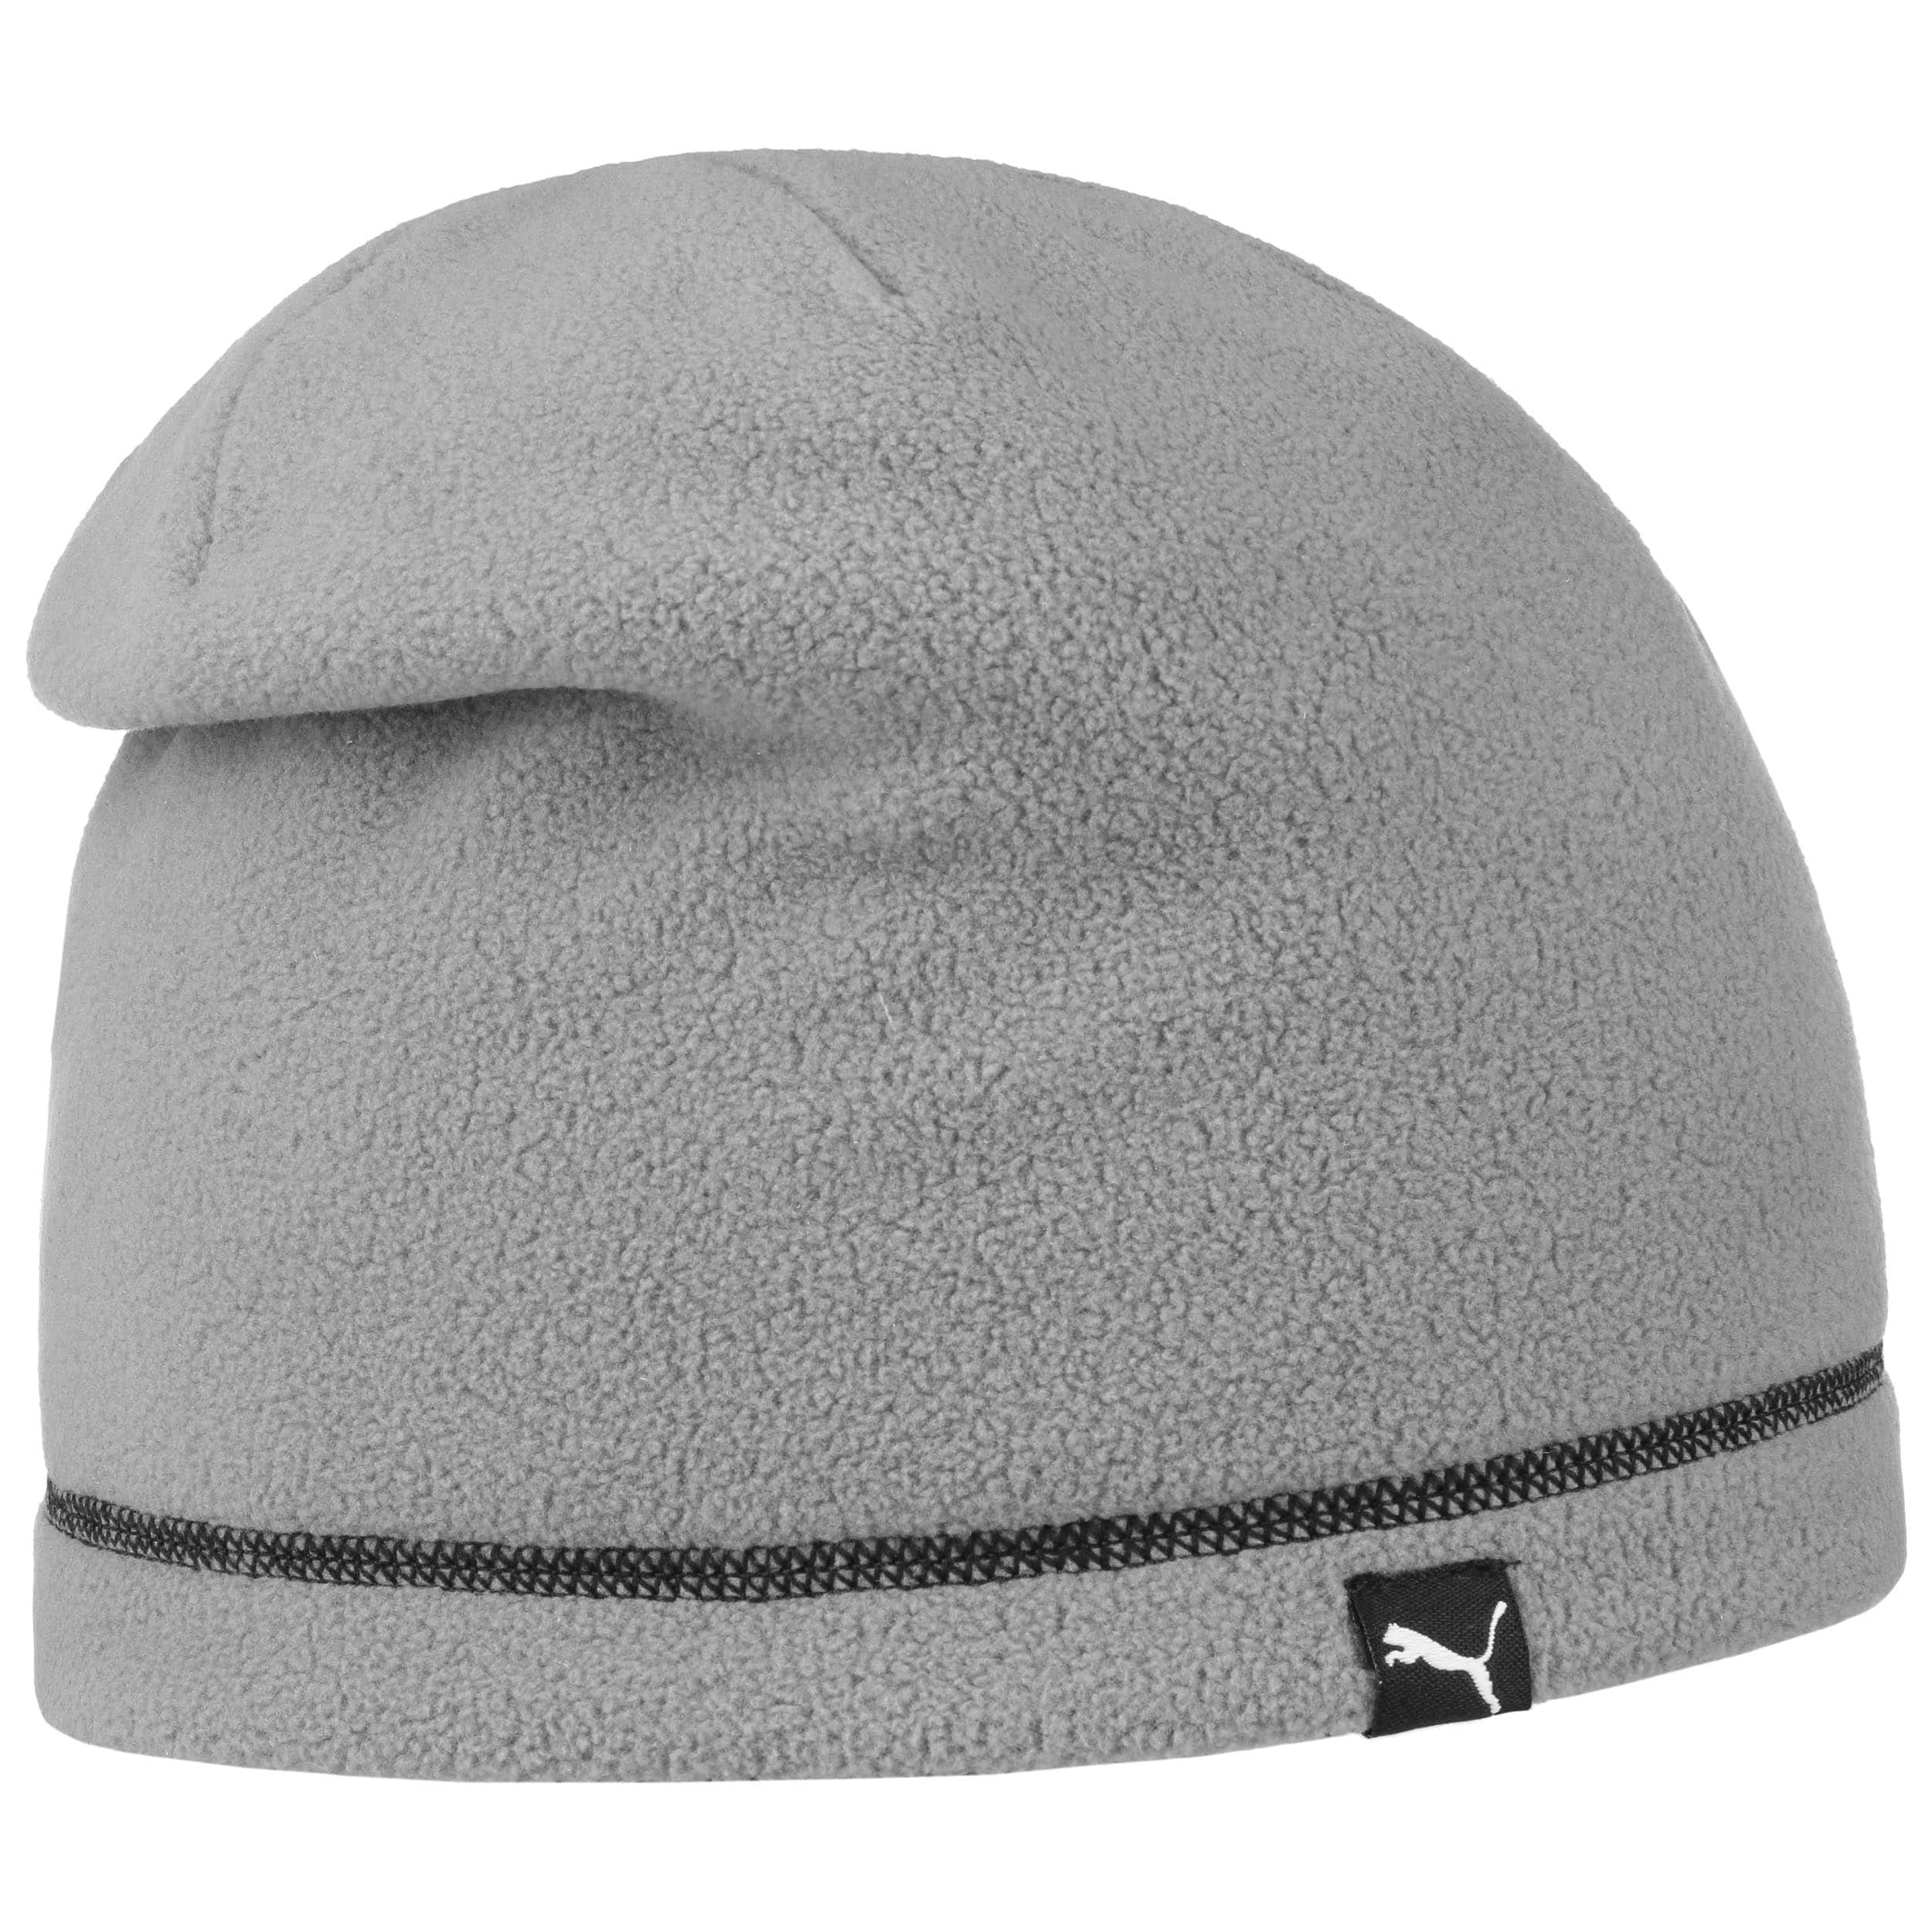 ... anthracite 6 · Active Fleece Beanie by PUMA - anthracite 7 ... b090a702b031